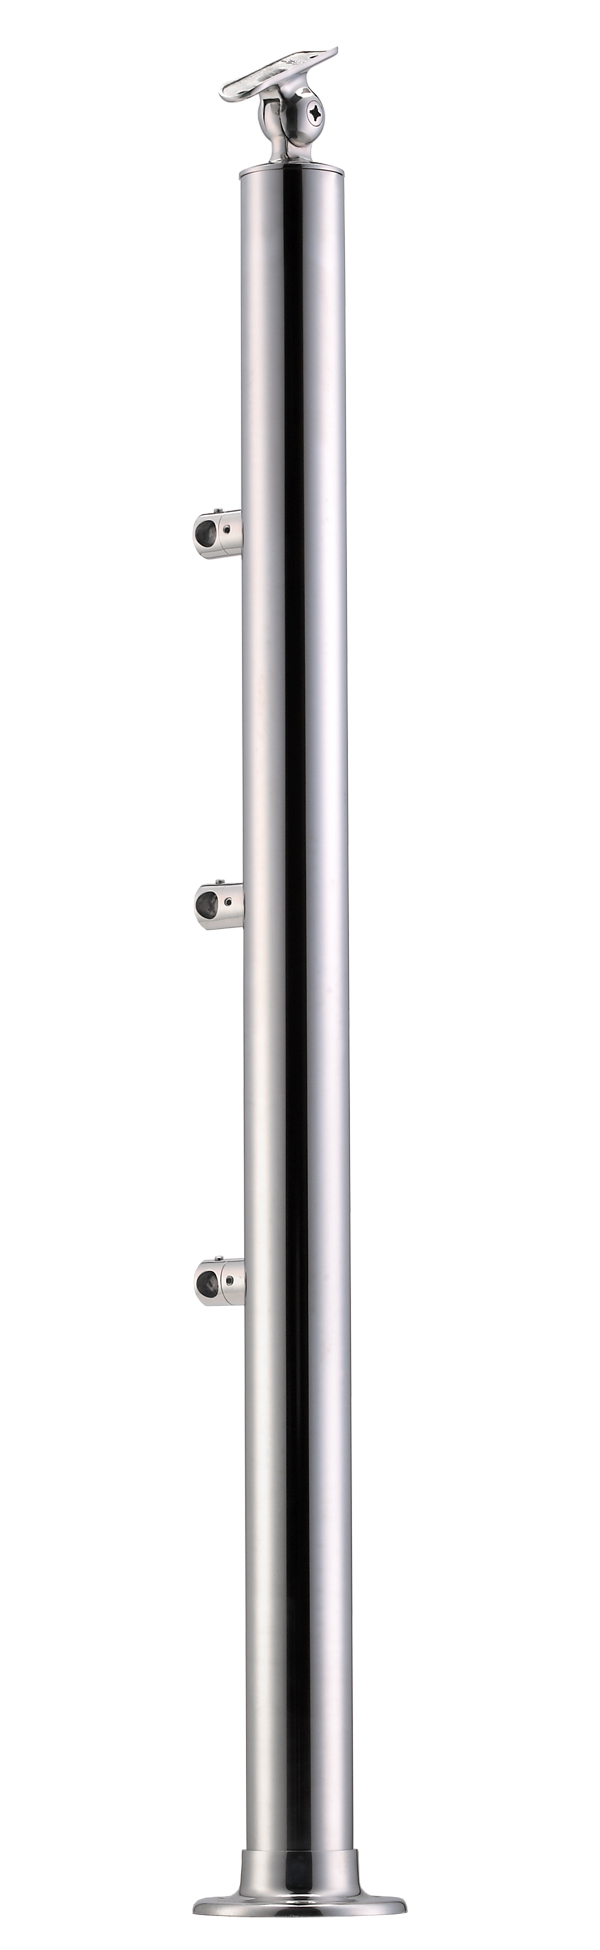 Stainless Steel Balustrade Posts - Tubular - SS:2020356A